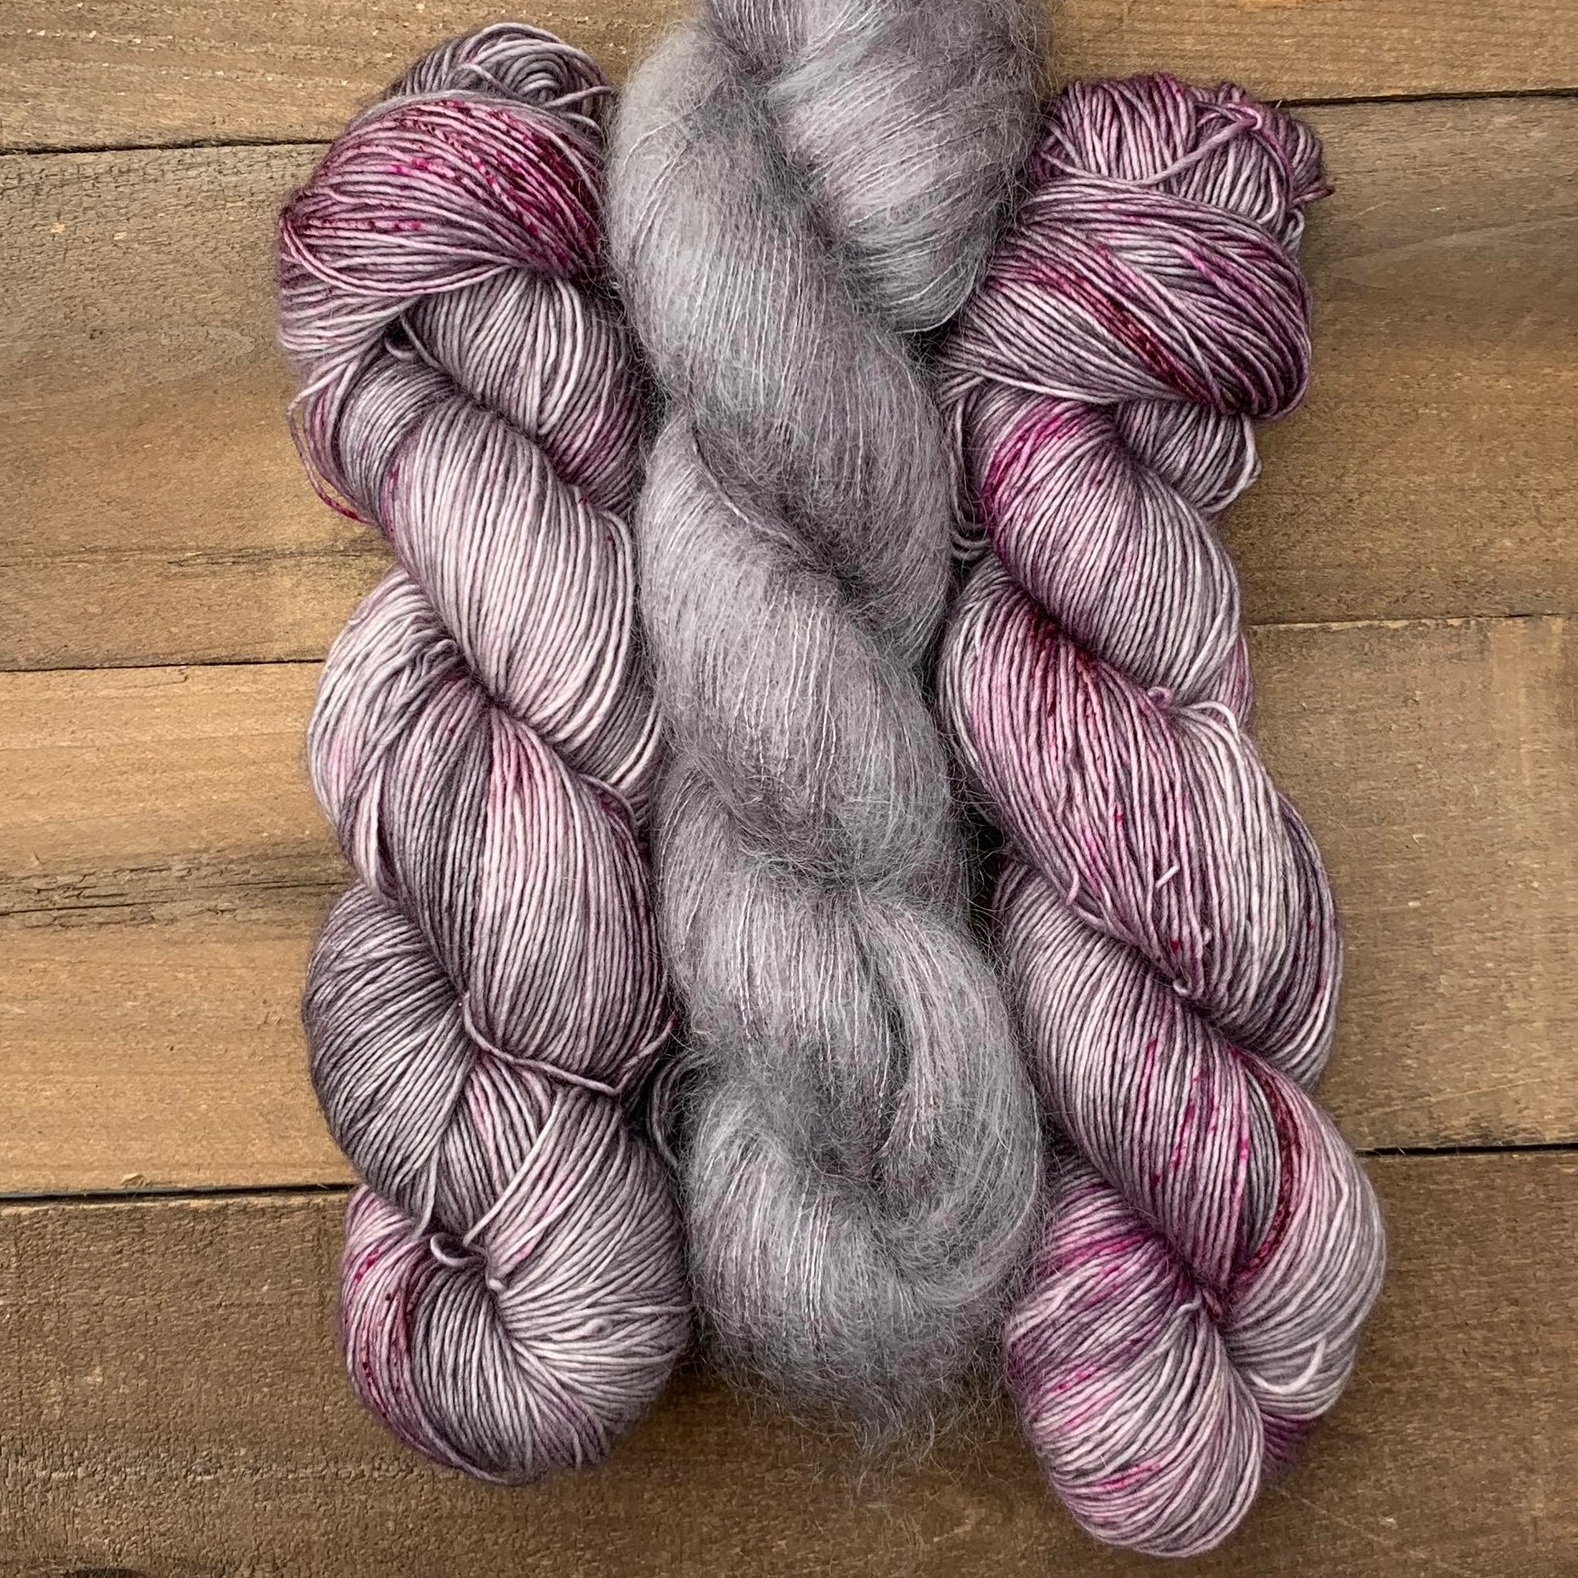 ABRACADABRA - (pictured along with grey mohair, in center)